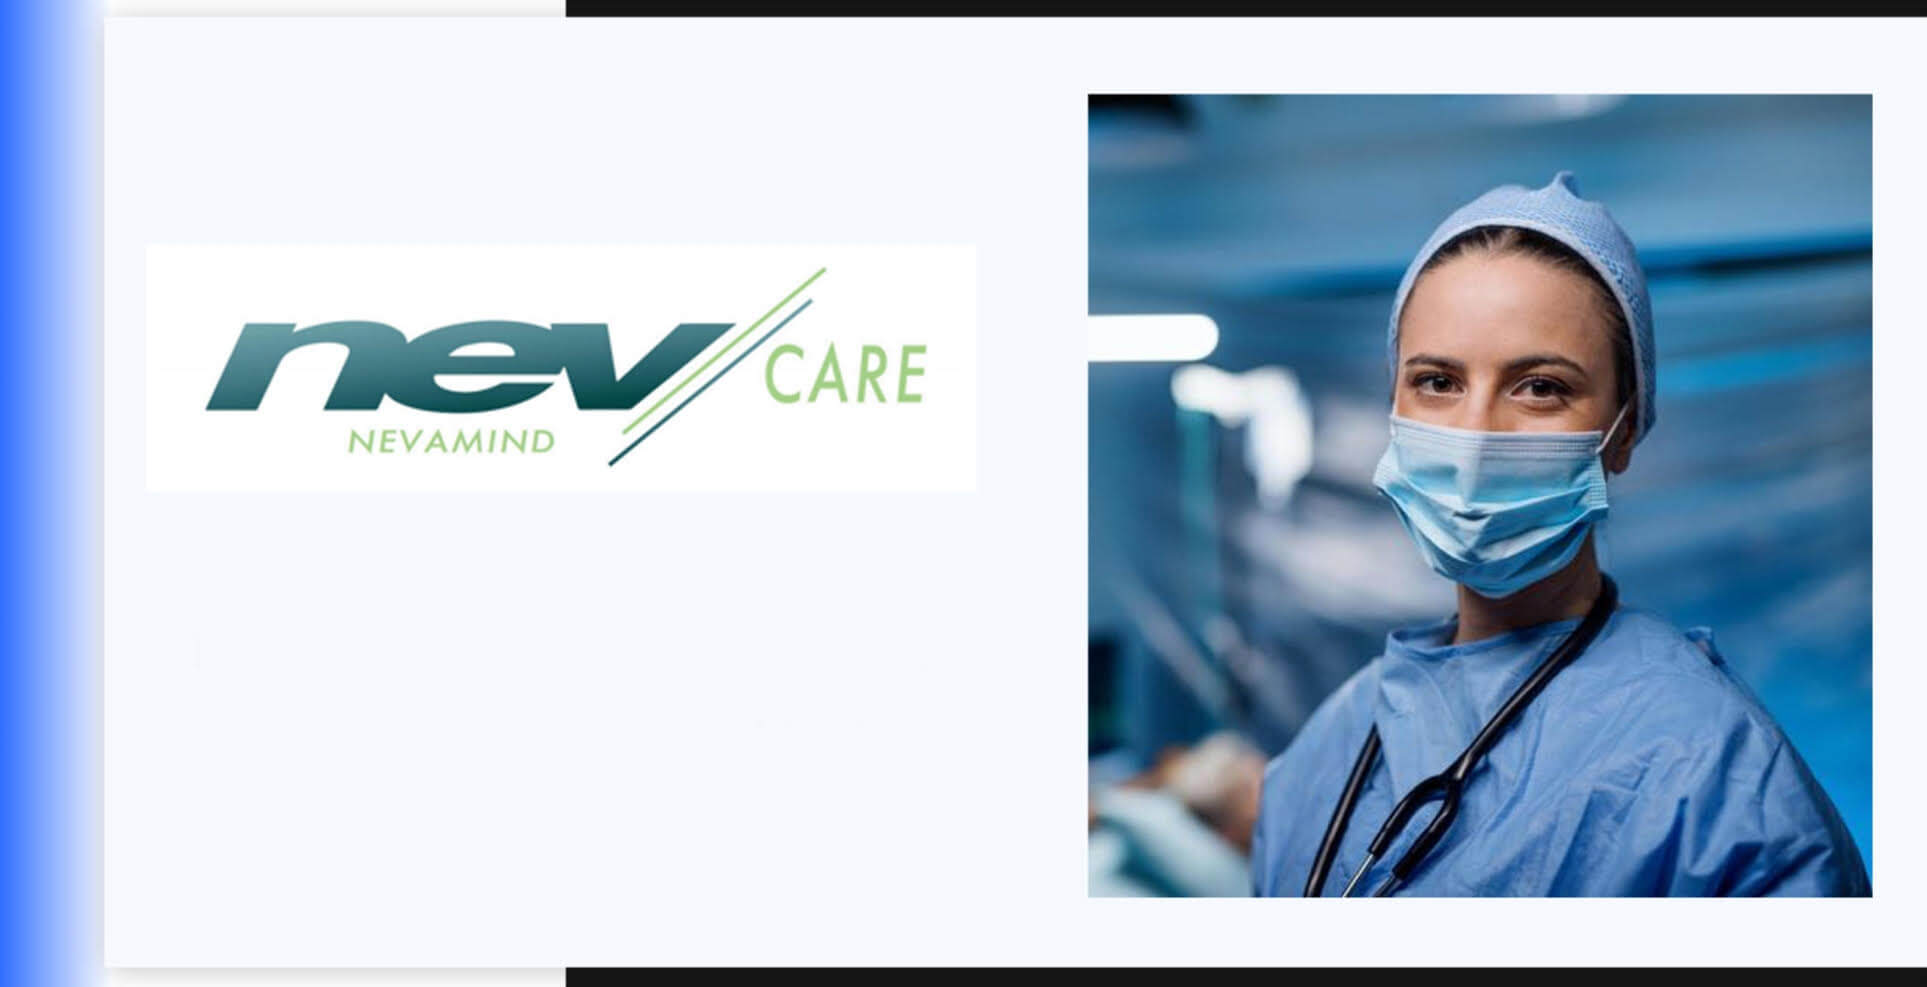 Nev CareView More